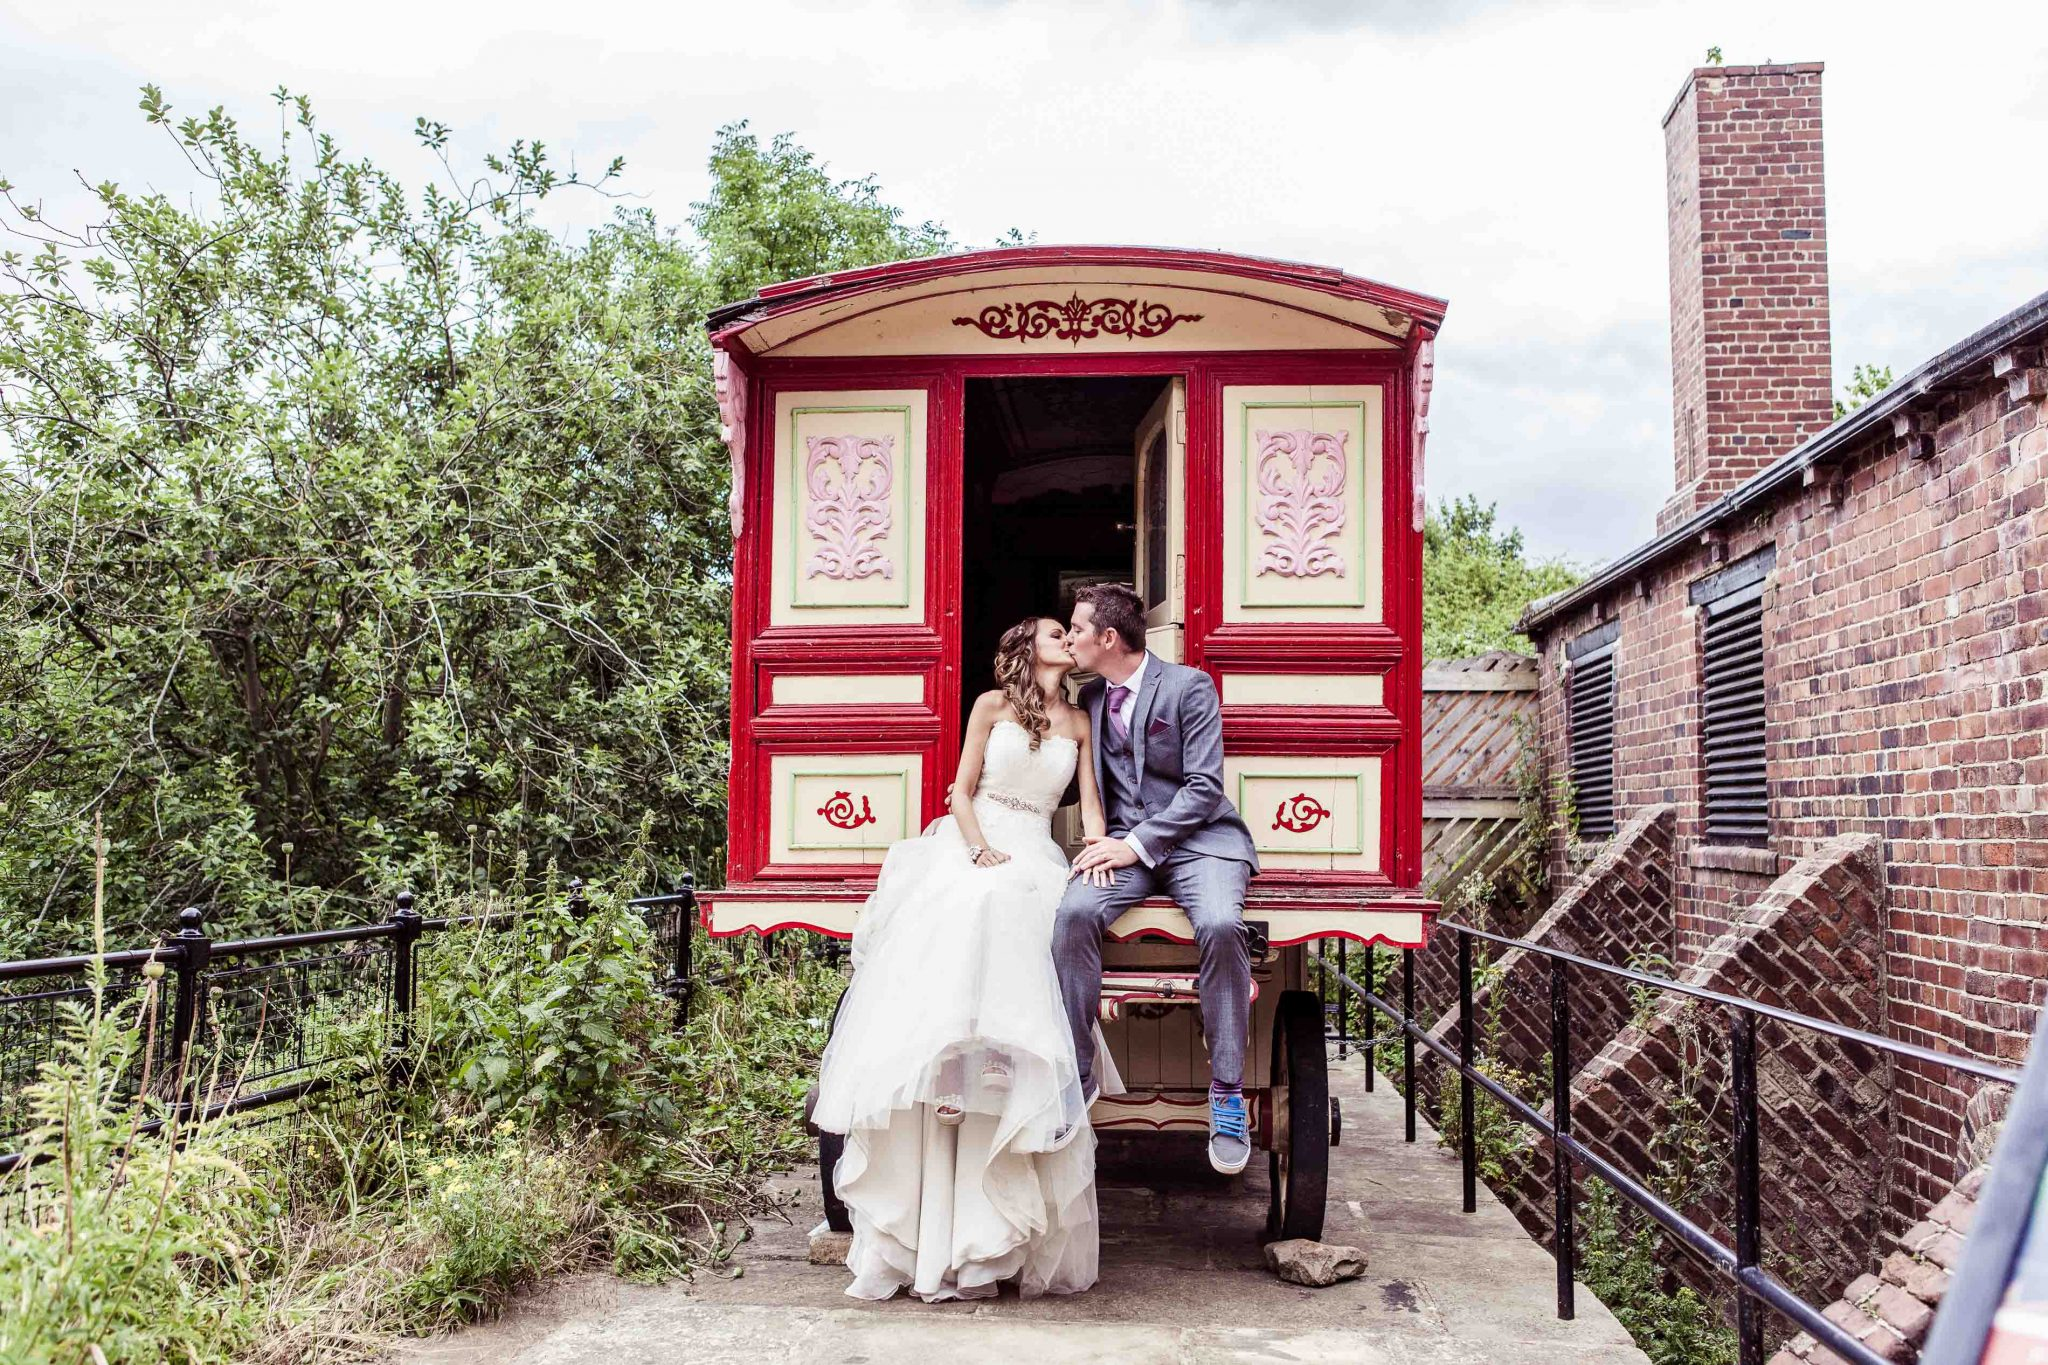 Bride and Groom share a kiss, whilst seated on the gypsy caravan at the unique wedding venue Thwaites Mills in Stourton Leeds. Set amongst the red brick industrial backdrop of the Leeds wedding venue and waterwheel museum